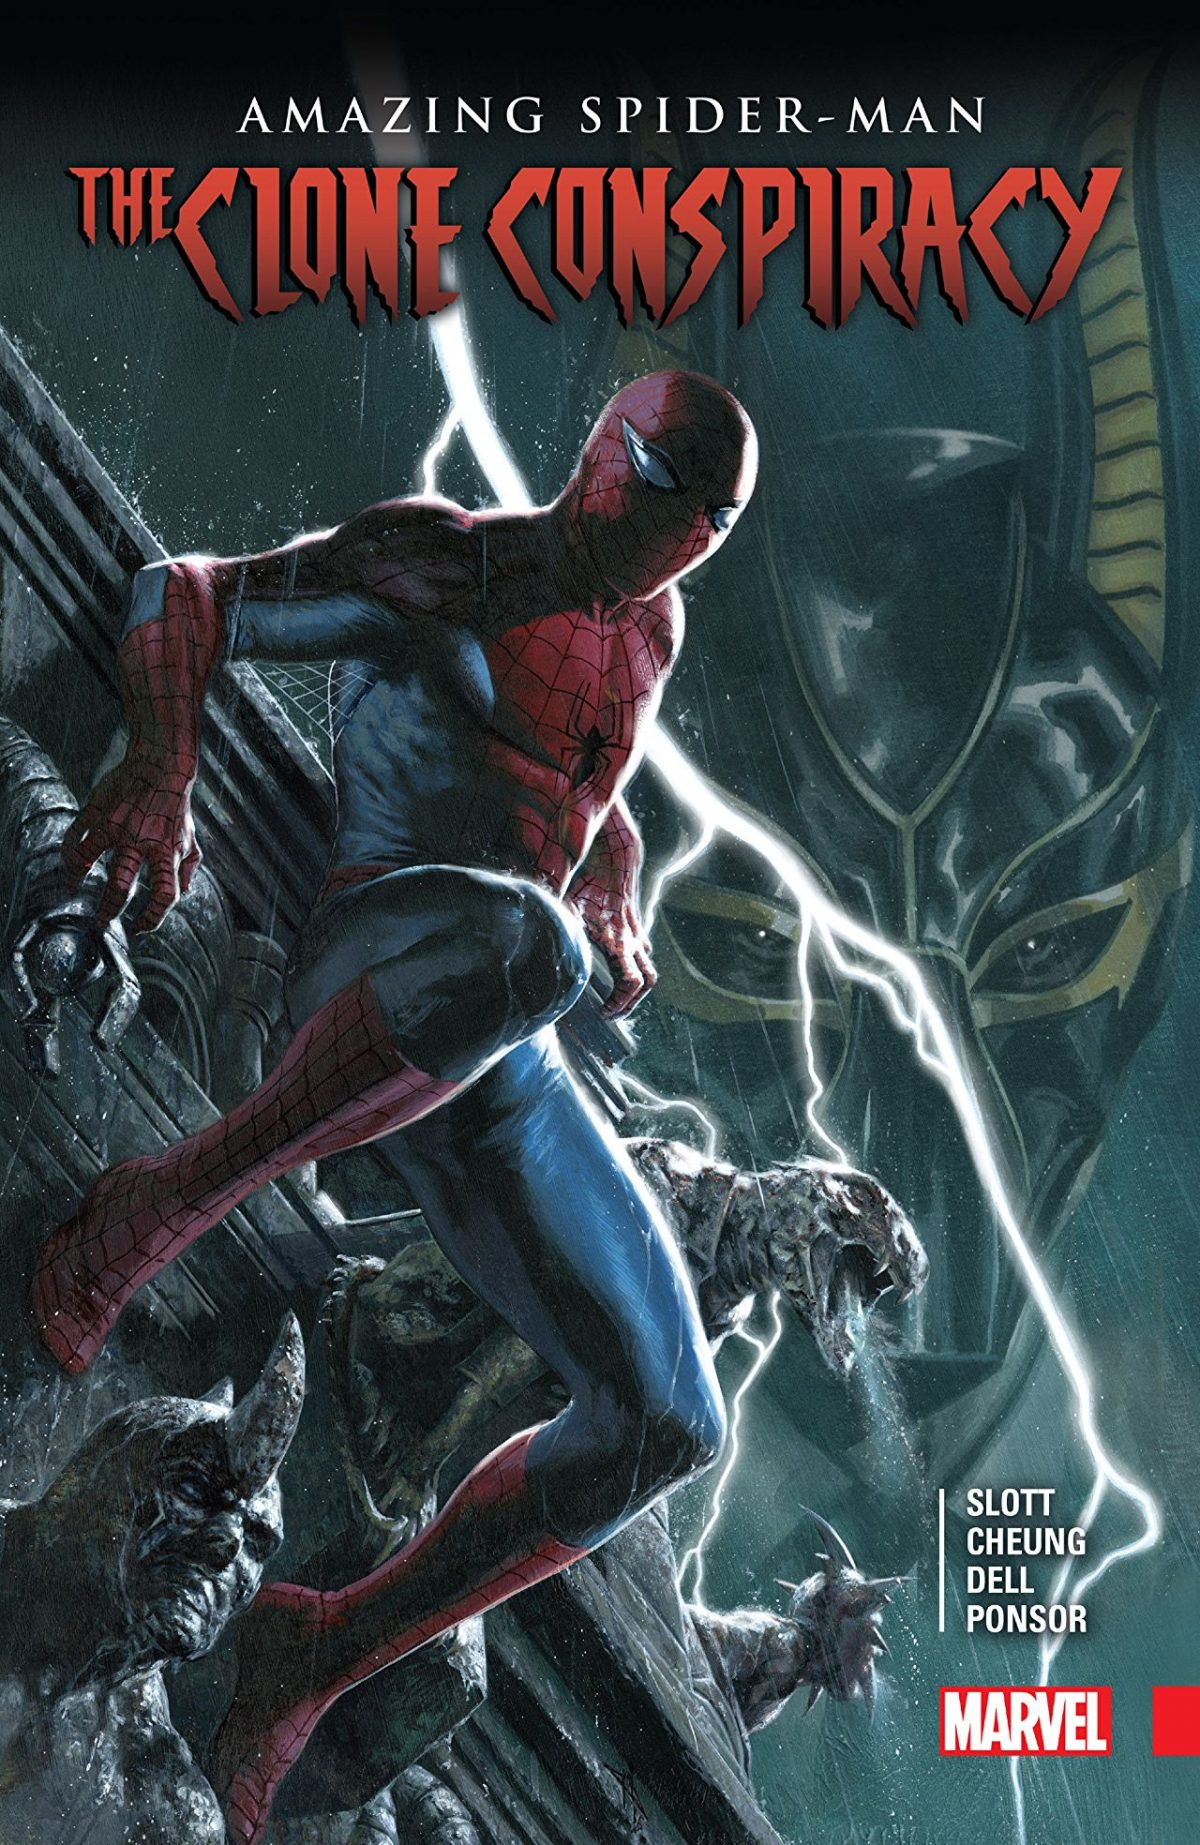 'Amazing Spider-Man: The Clone Conspiracy' is a traditional Spider-Man story with some great artwork